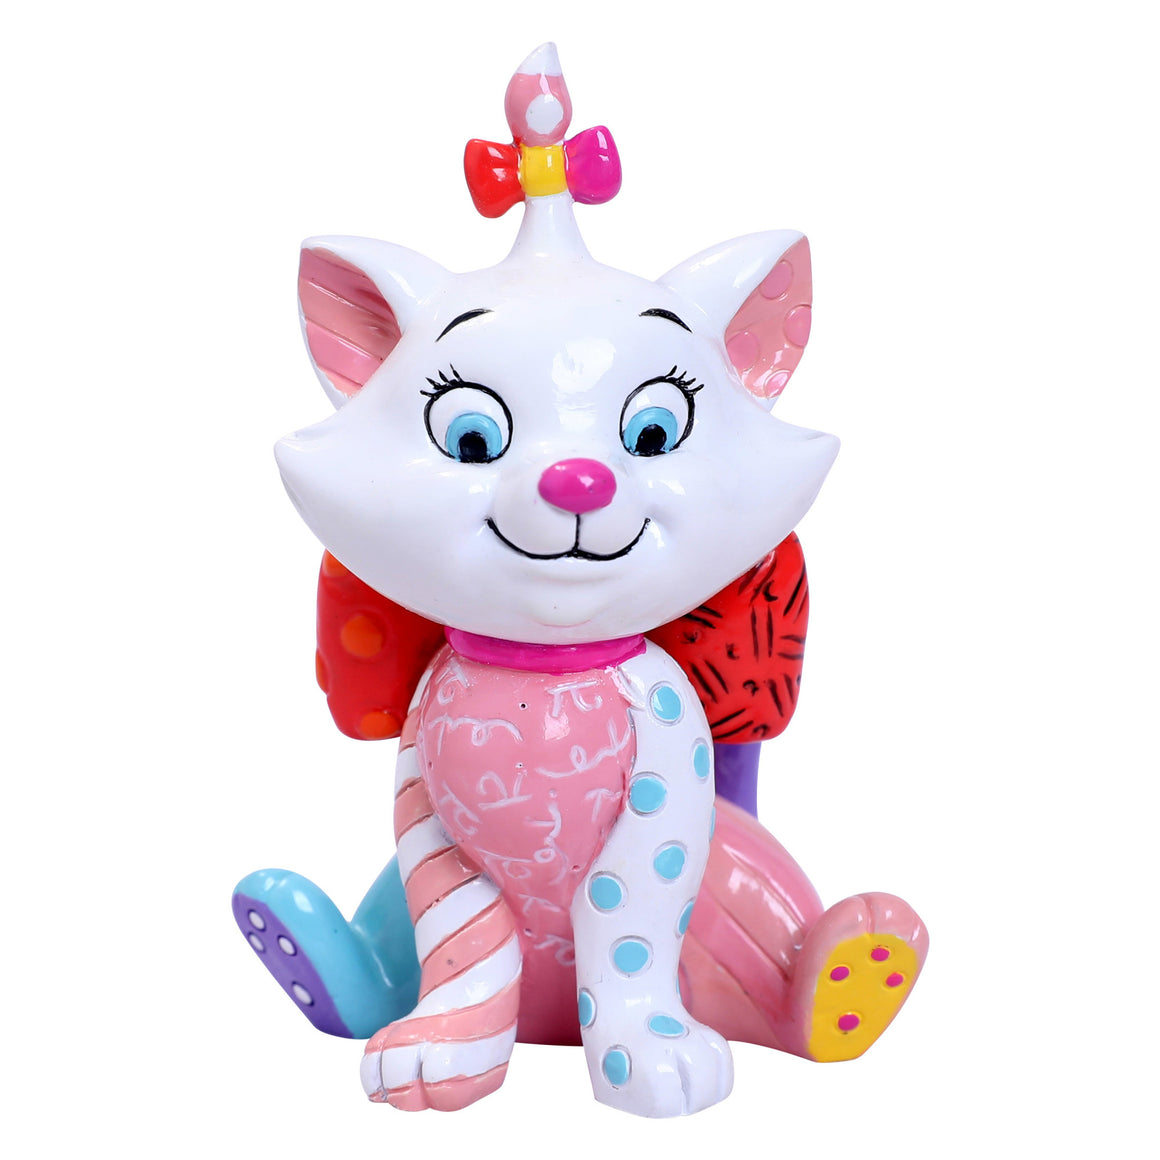 Marie from the Aristocats Mini Figurine